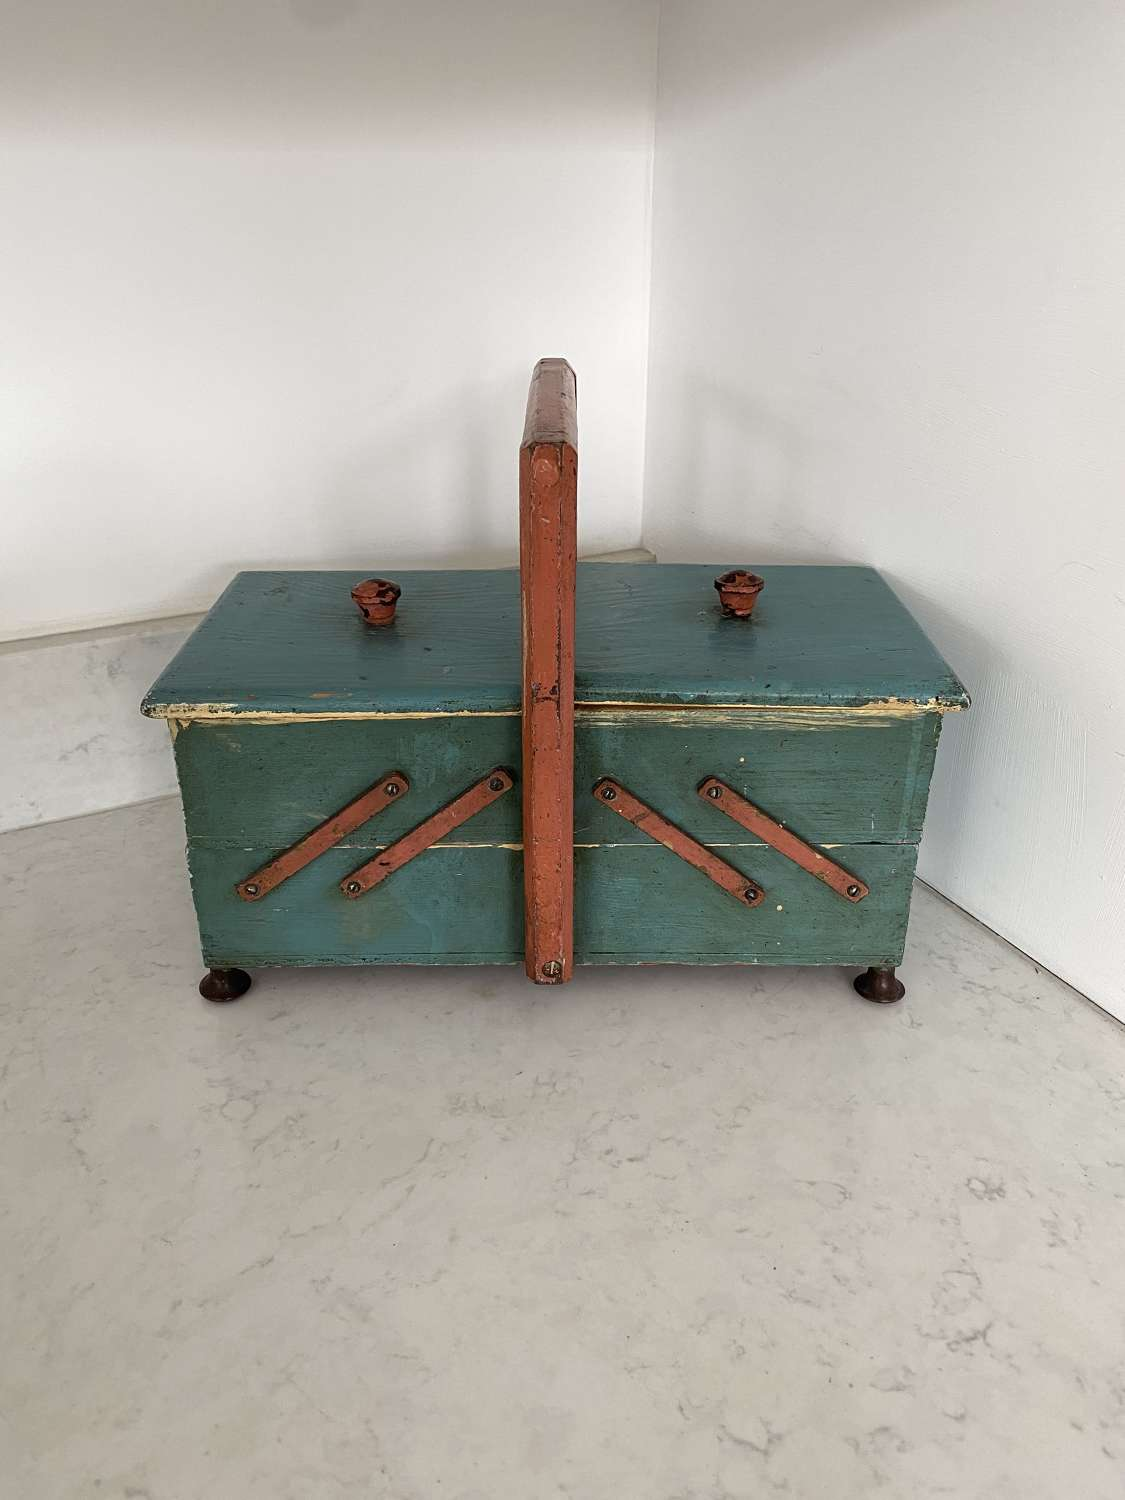 C1940s Extendable Workbox in Great Condition Original Paint